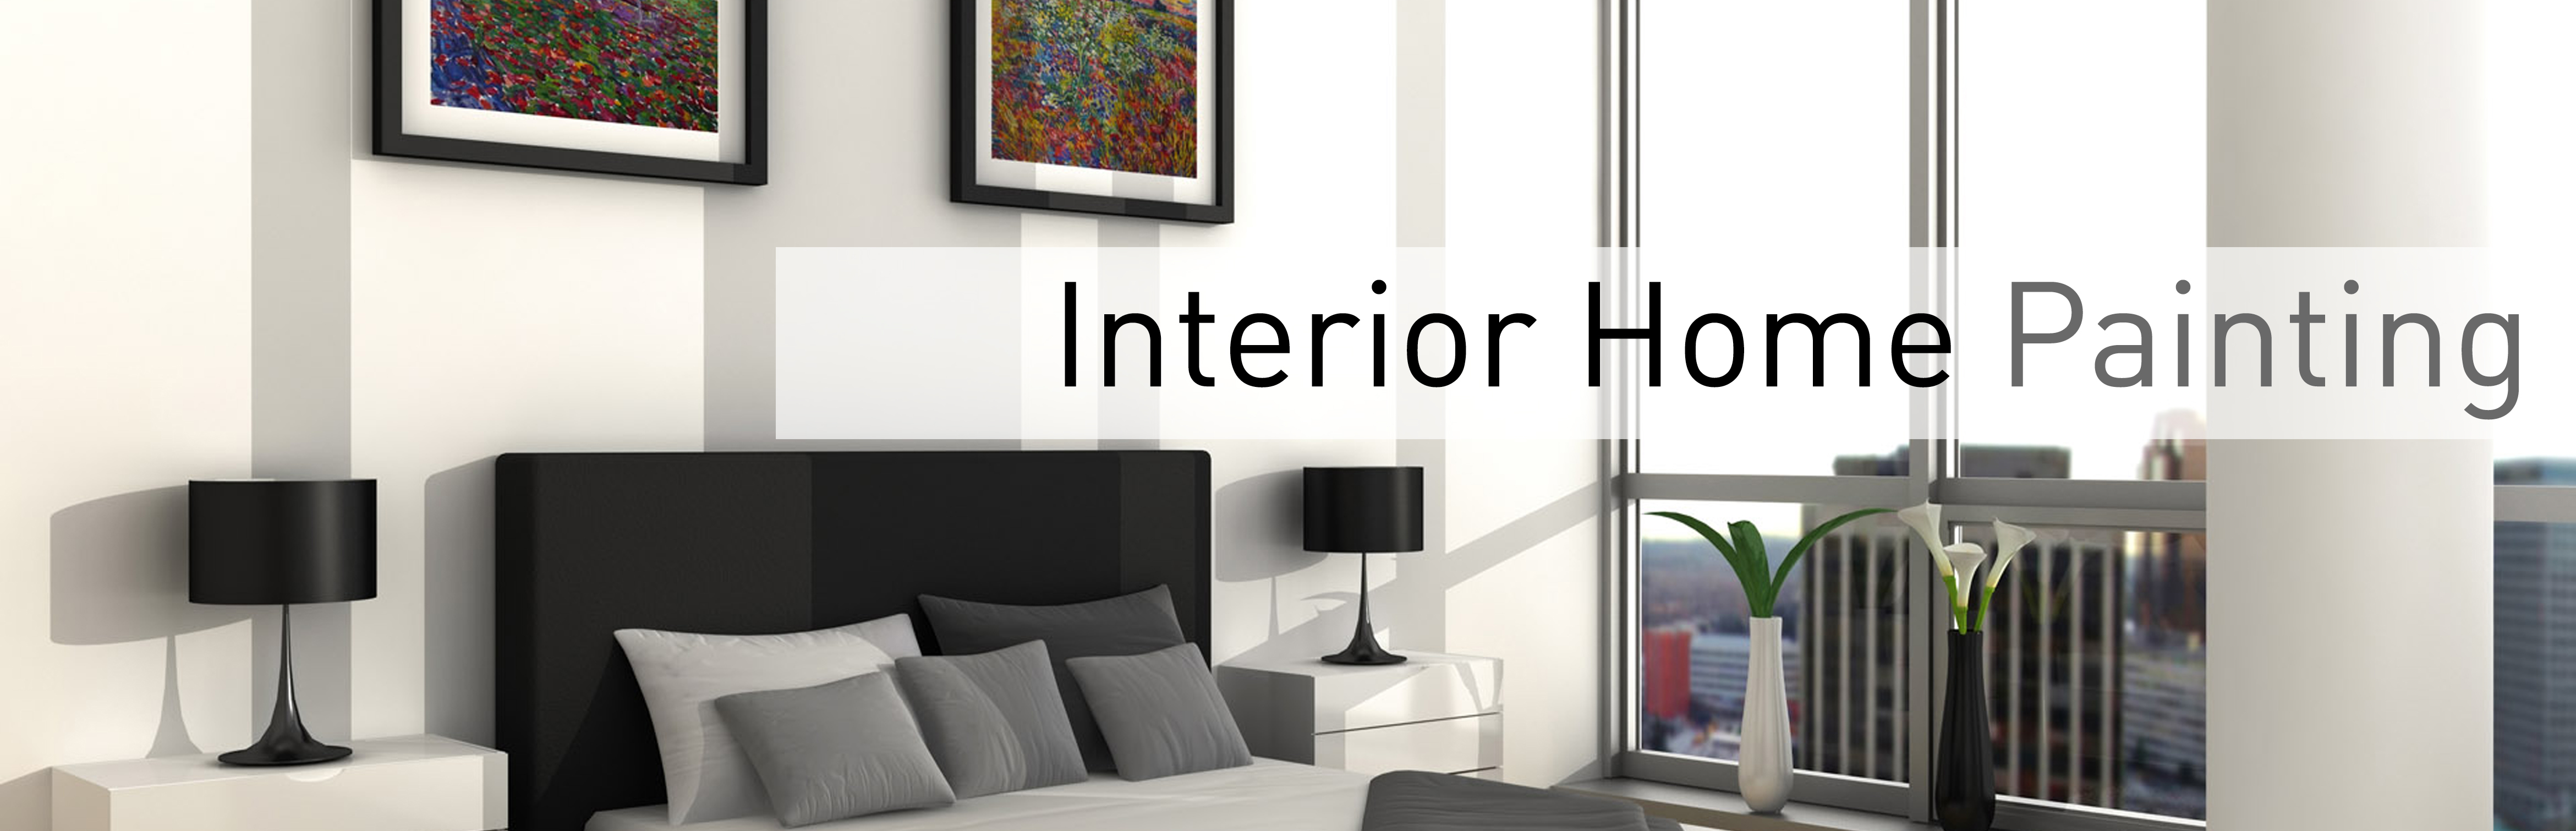 Interior Home Painting Residential Commercial Painters